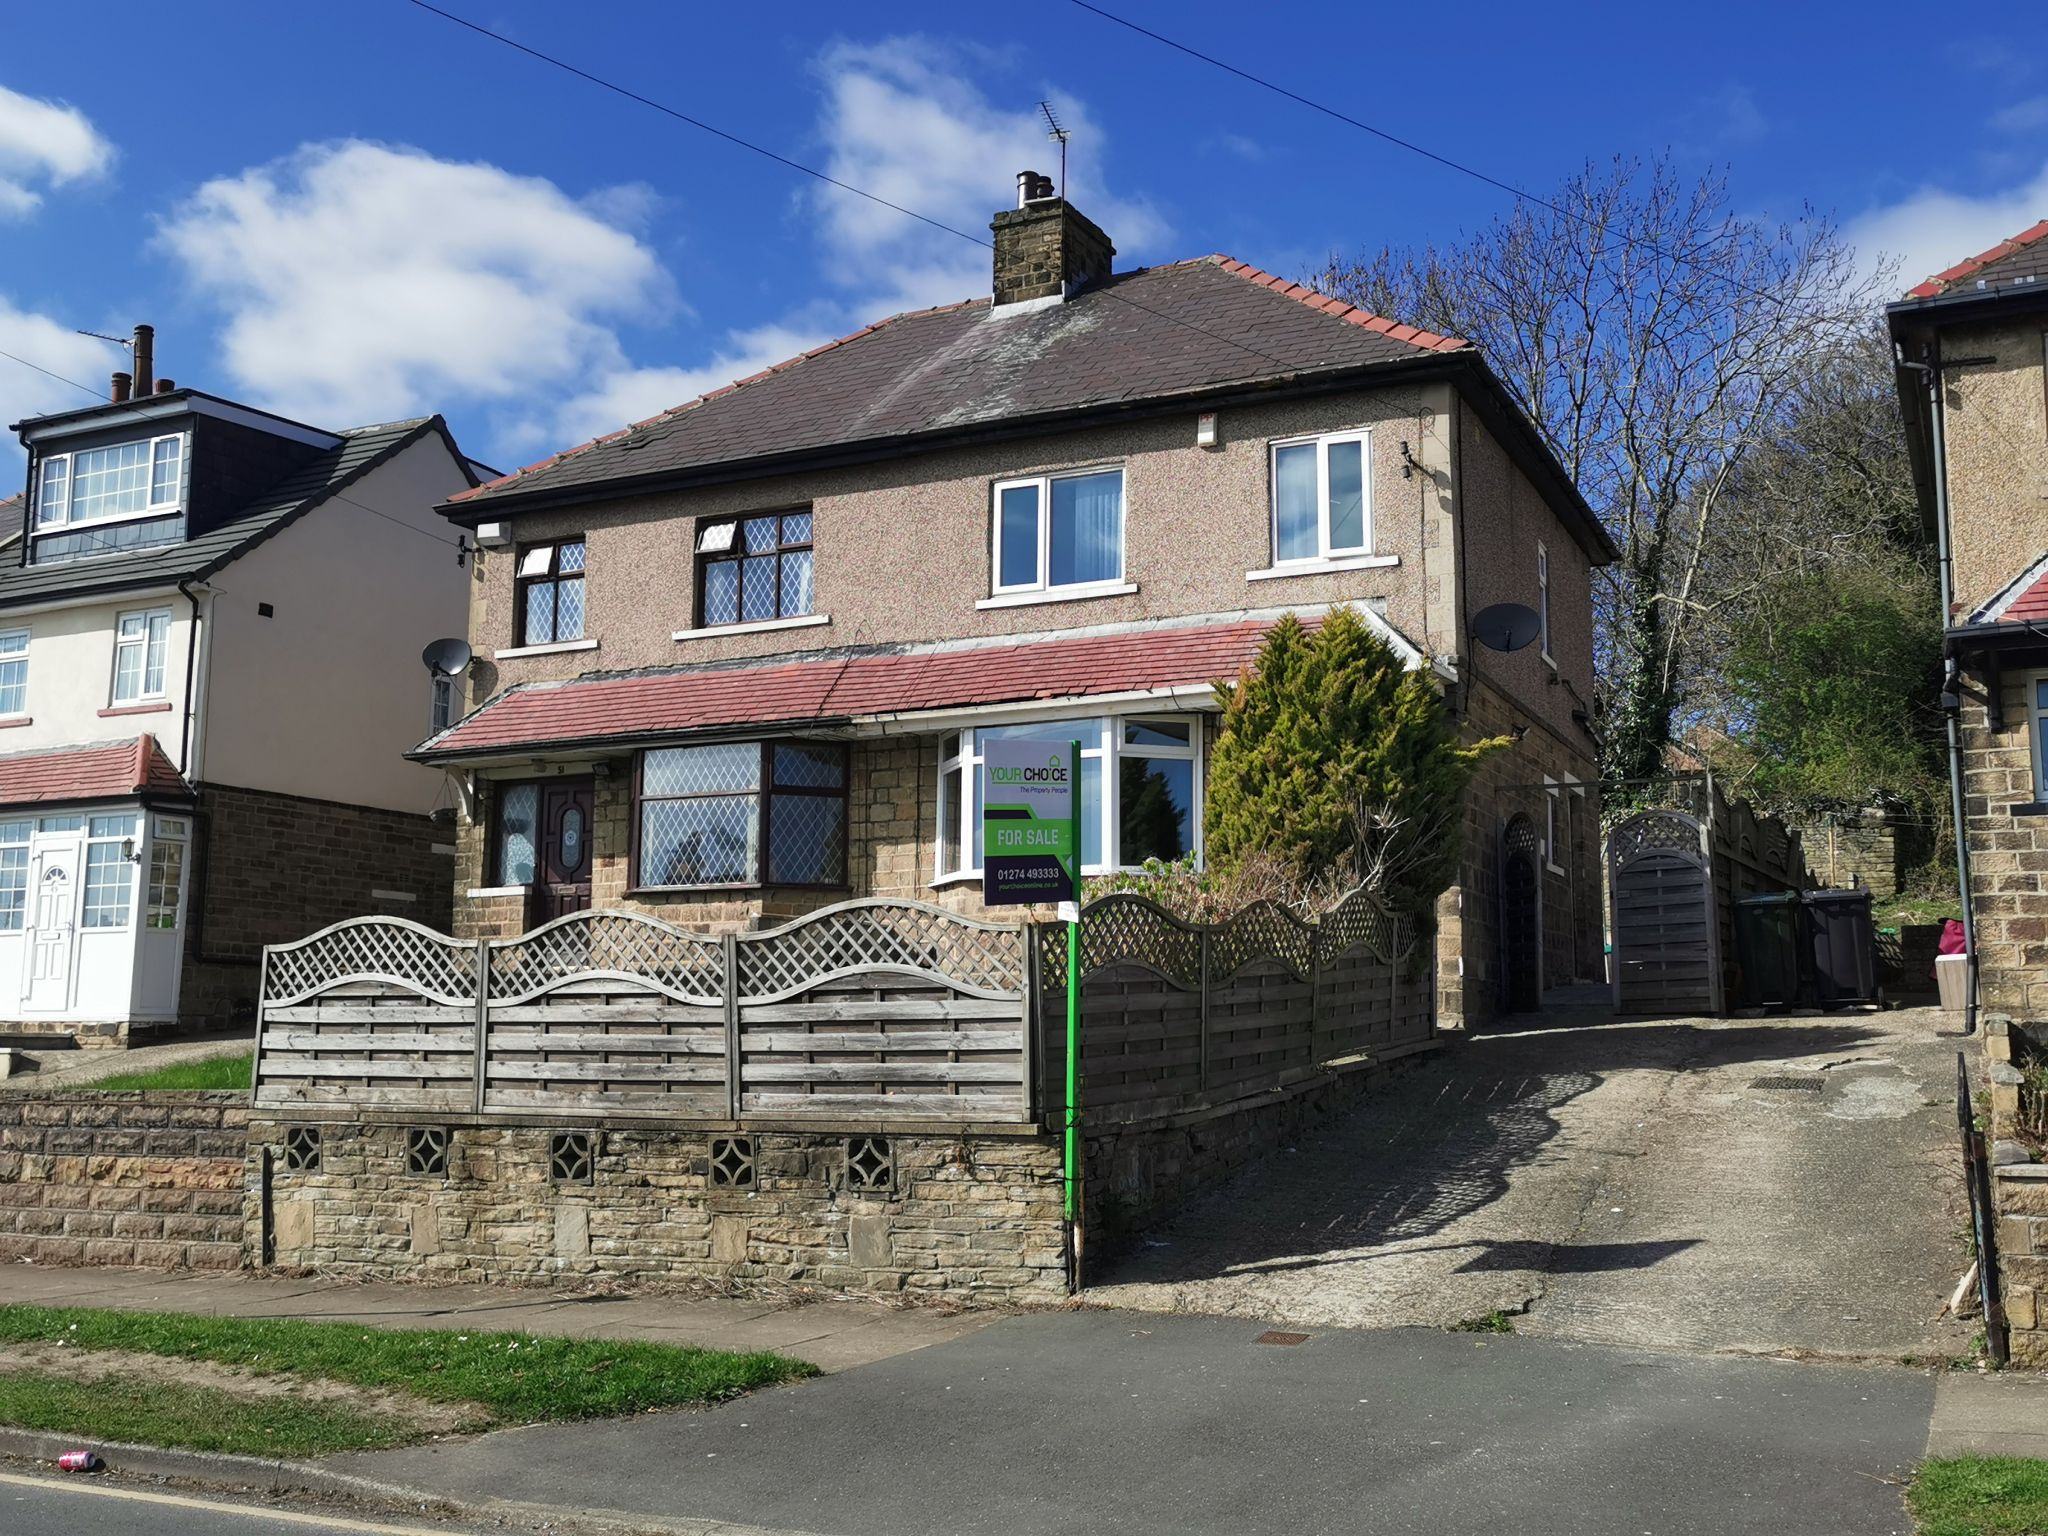 3 bedroom semi-detached house Sale Agreed in Bradford - Photograph 1.